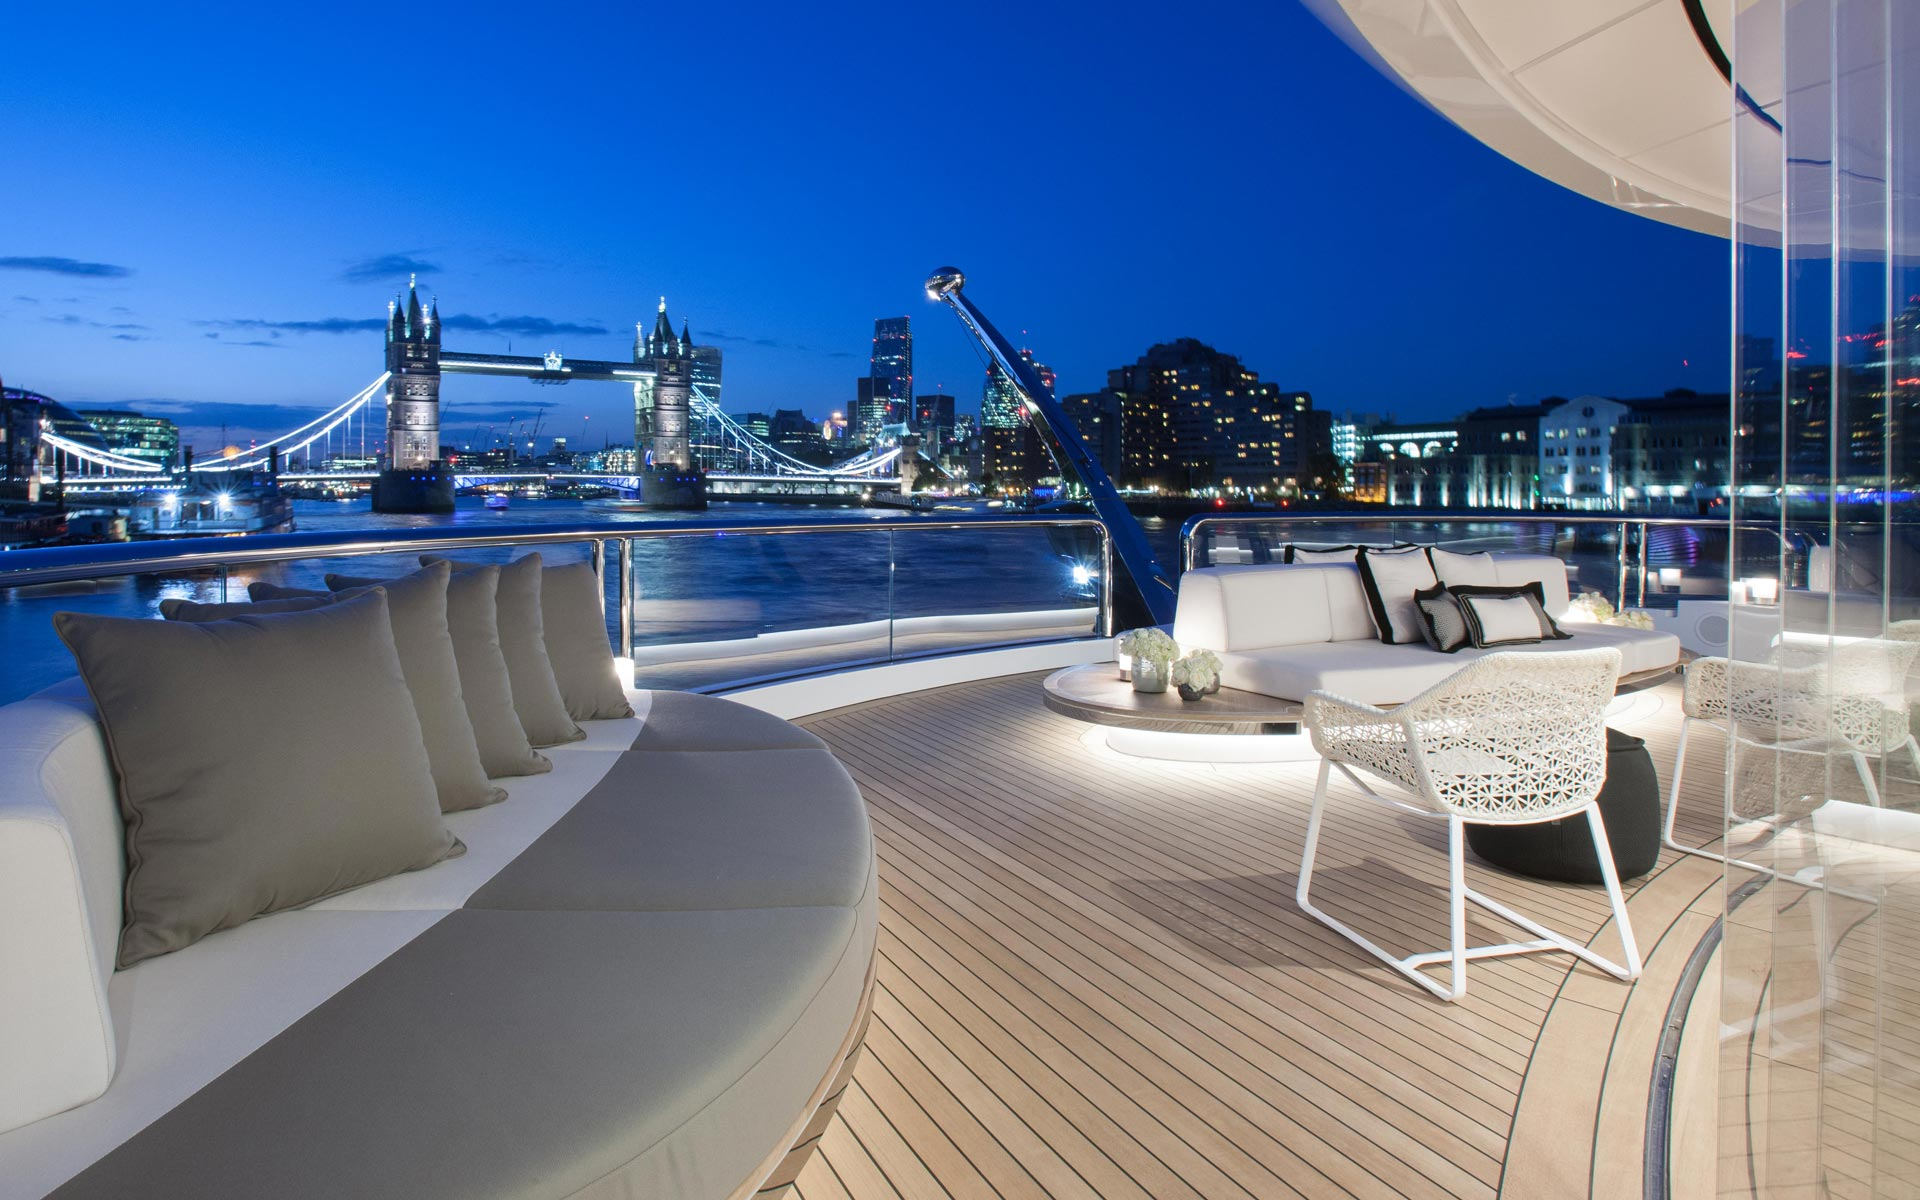 Aft Deck By Night In London